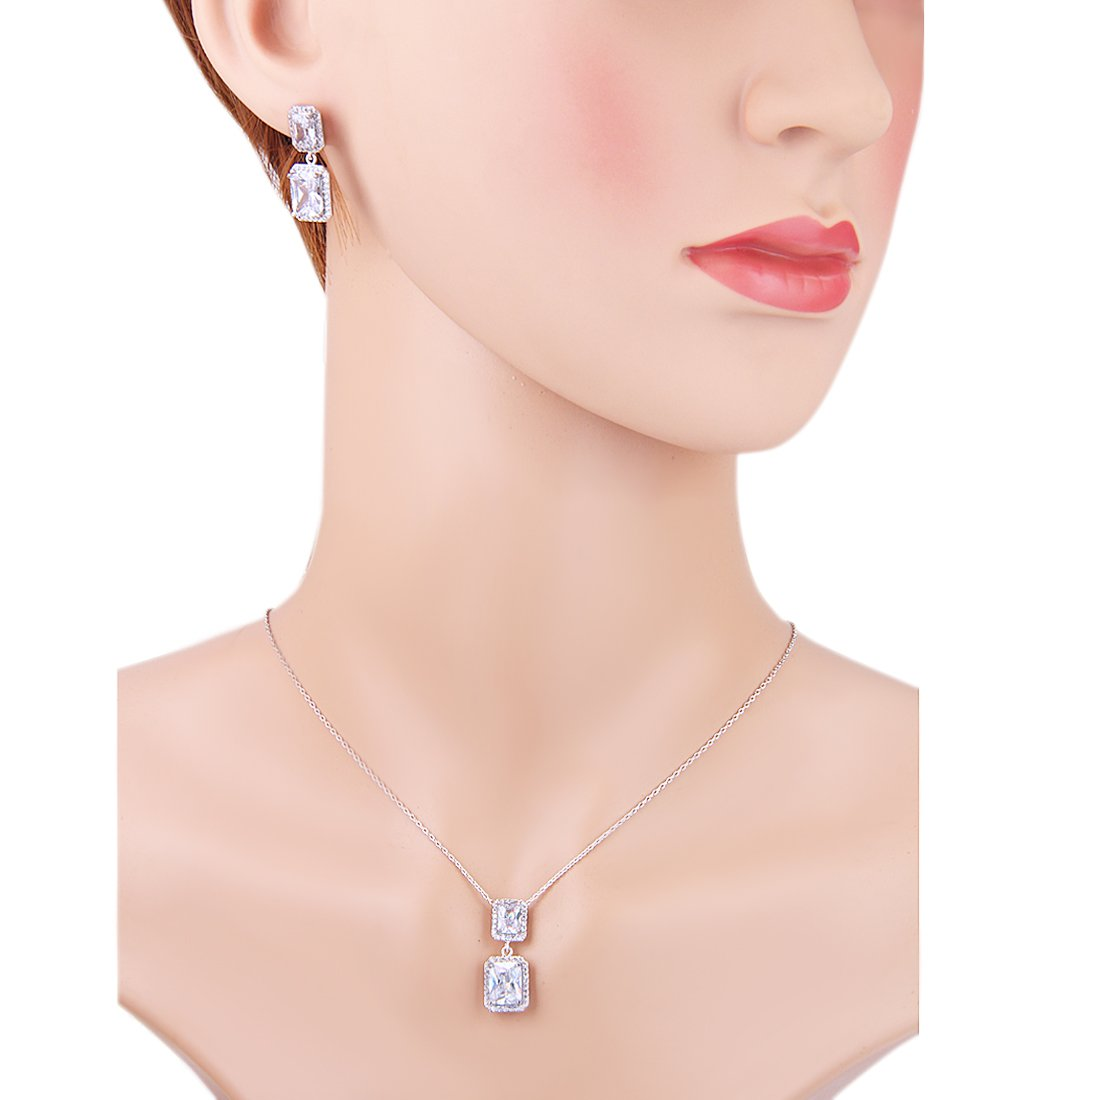 Wordless Love Jewelry Sets for Women Cubic Zirconia Party Earrings Pendant Necklace Set by Wordless Love (Image #5)